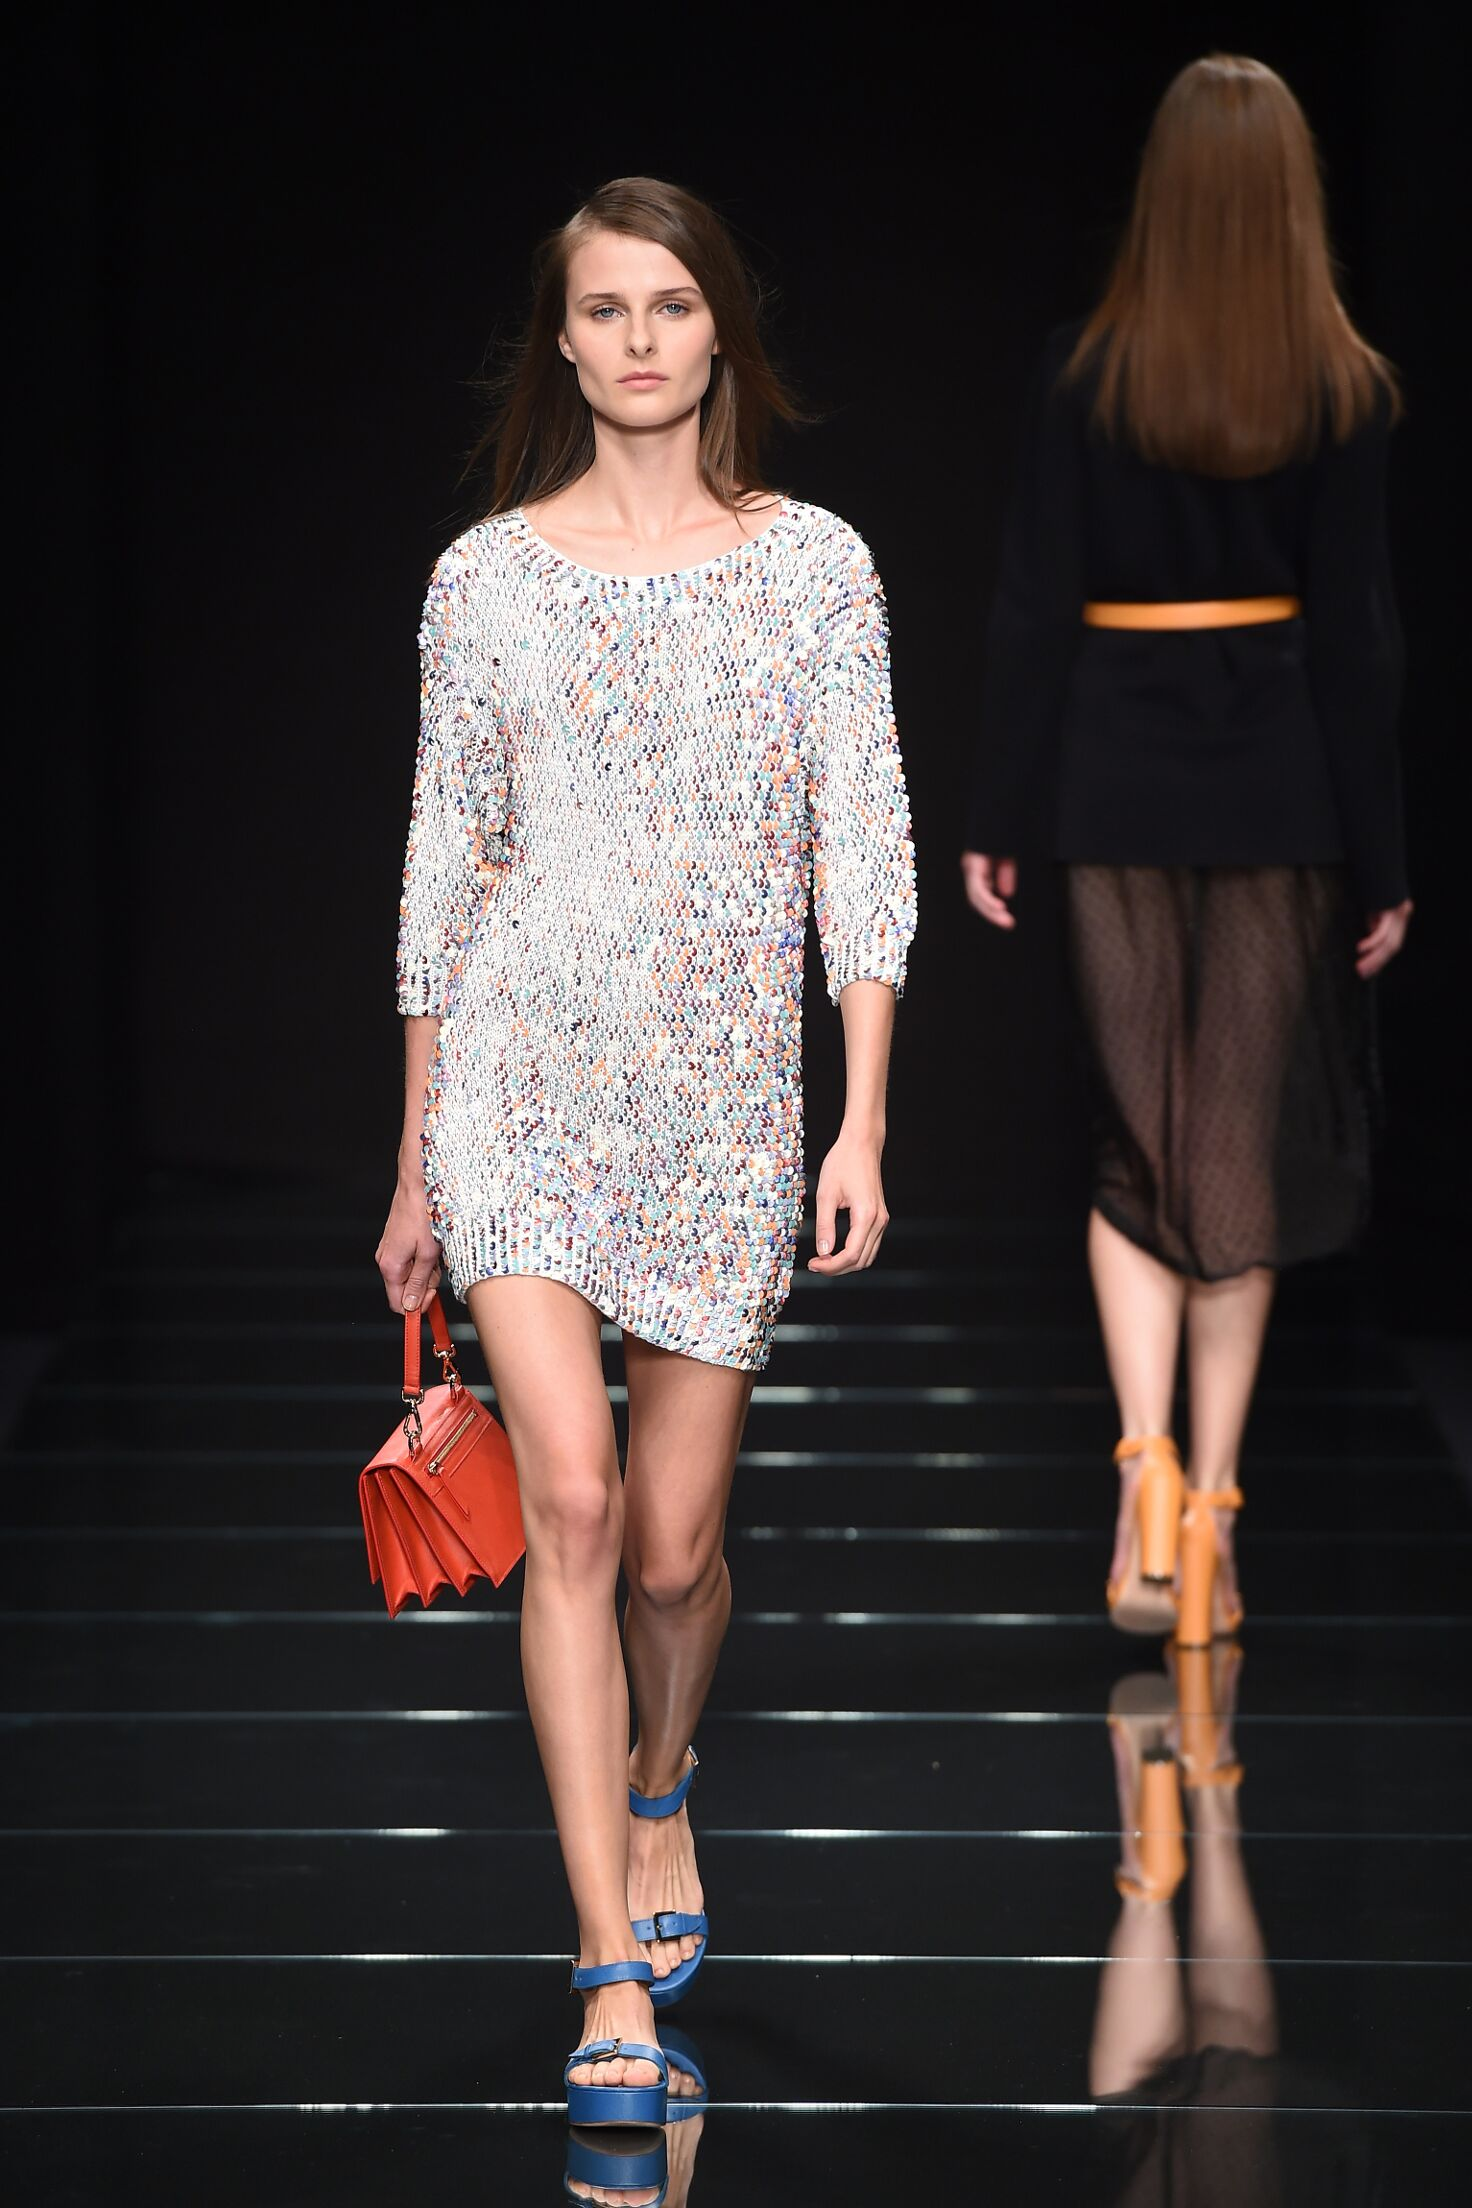 Runway Anteprima Spring Summer 2015 Women's Collection Milan Fashion Week